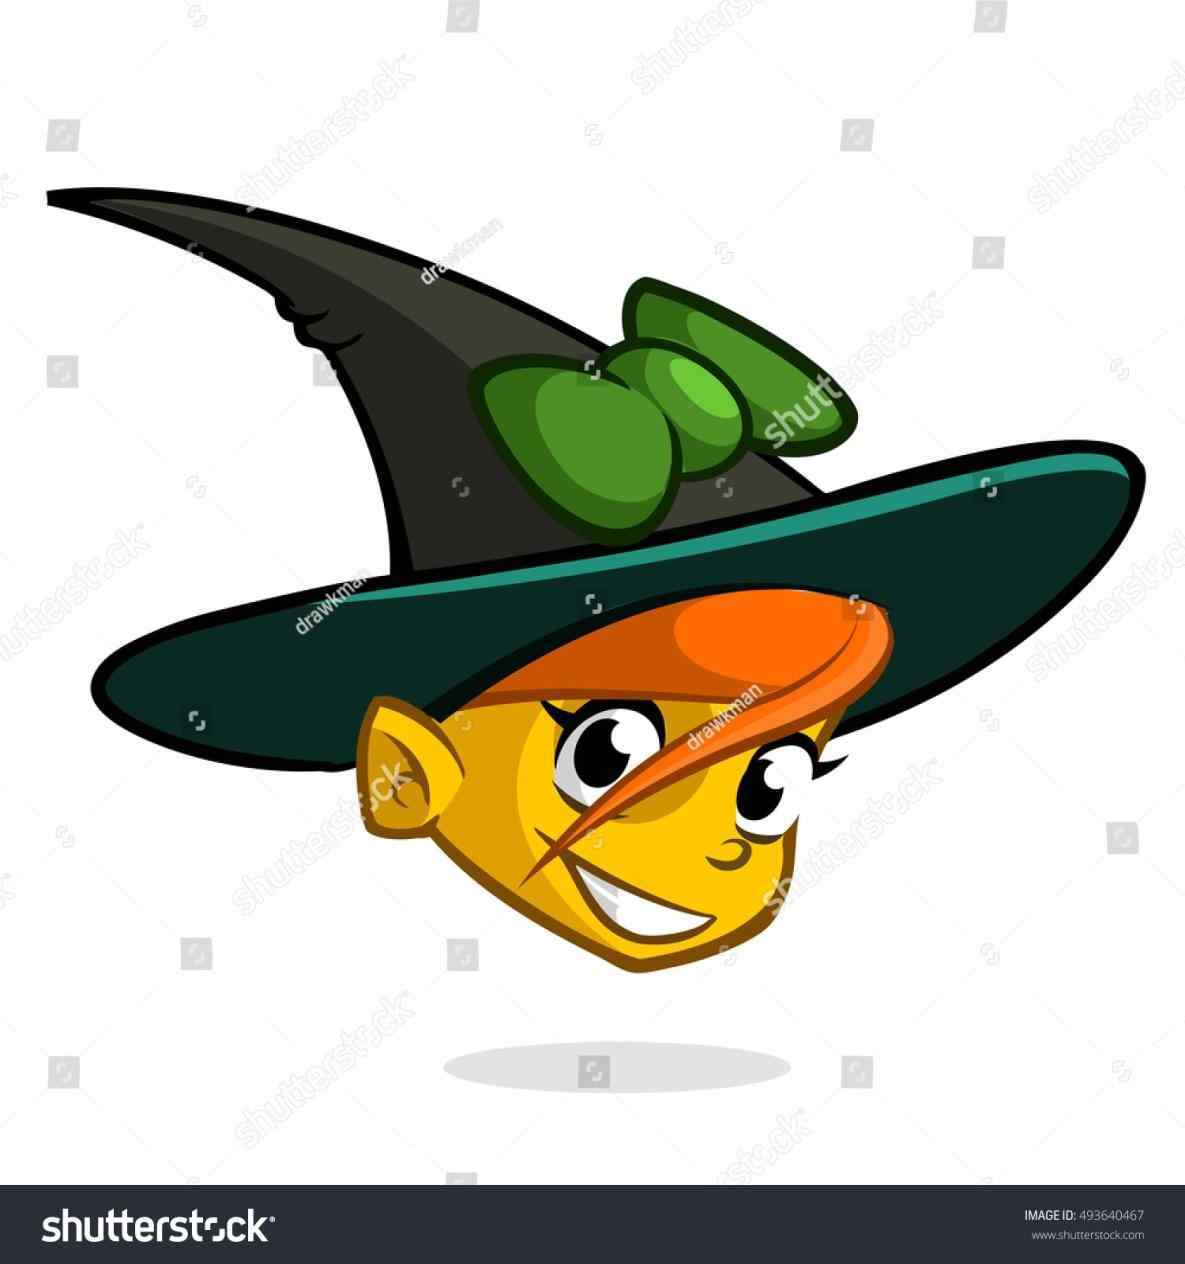 1185x1264 Halloween Witch Clip Art. Candy Corn Wearing Witches Hat Clip Art